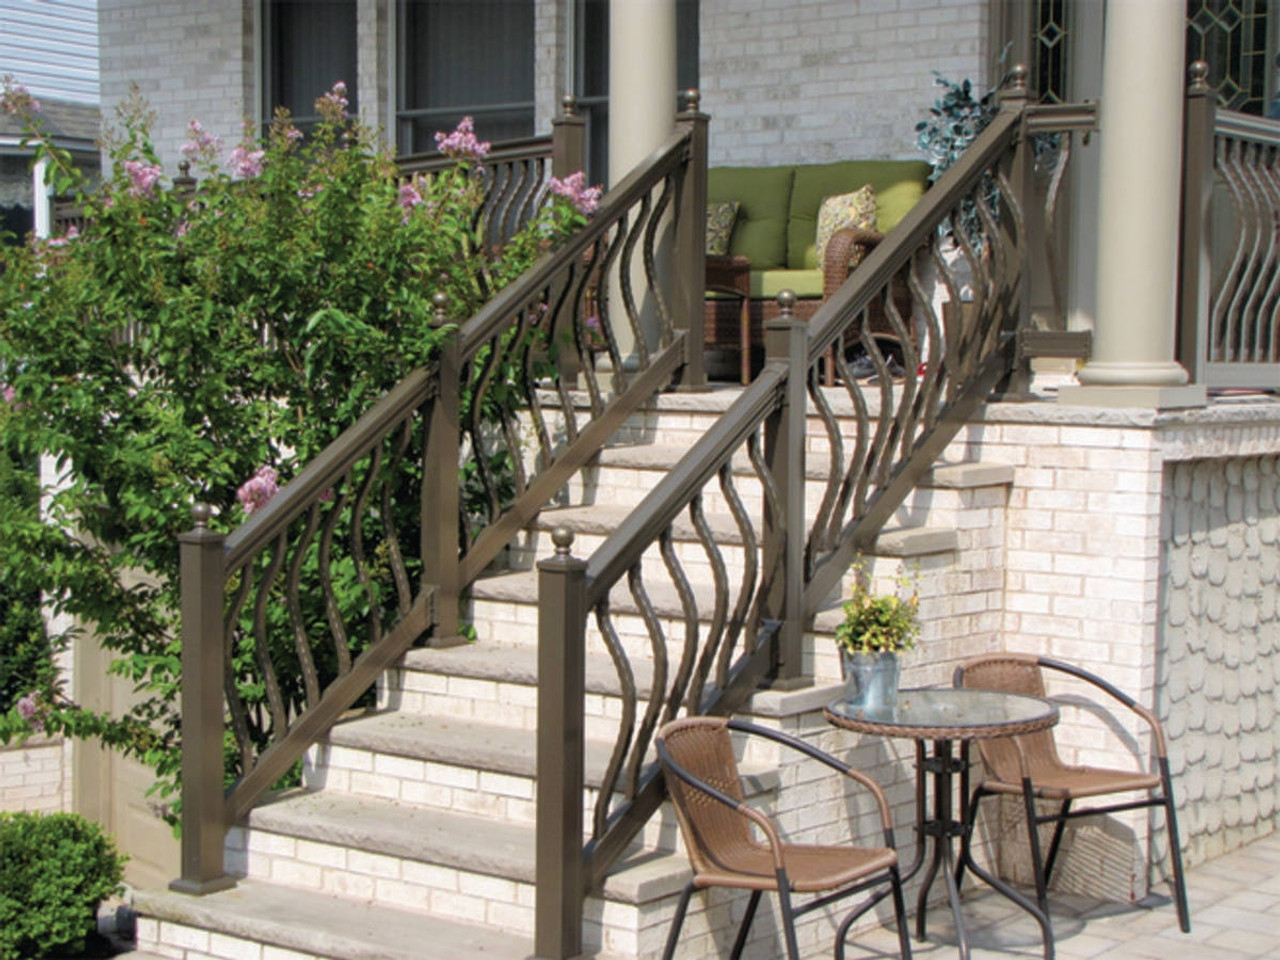 Key Link Lancaster Heavy Duty Aluminum Stair Railing Sections | Aluminum Handrails For Outdoor Steps | Wrought Iron Railings | Baluster | Staircase | Freedom | Powder Coated Aluminum